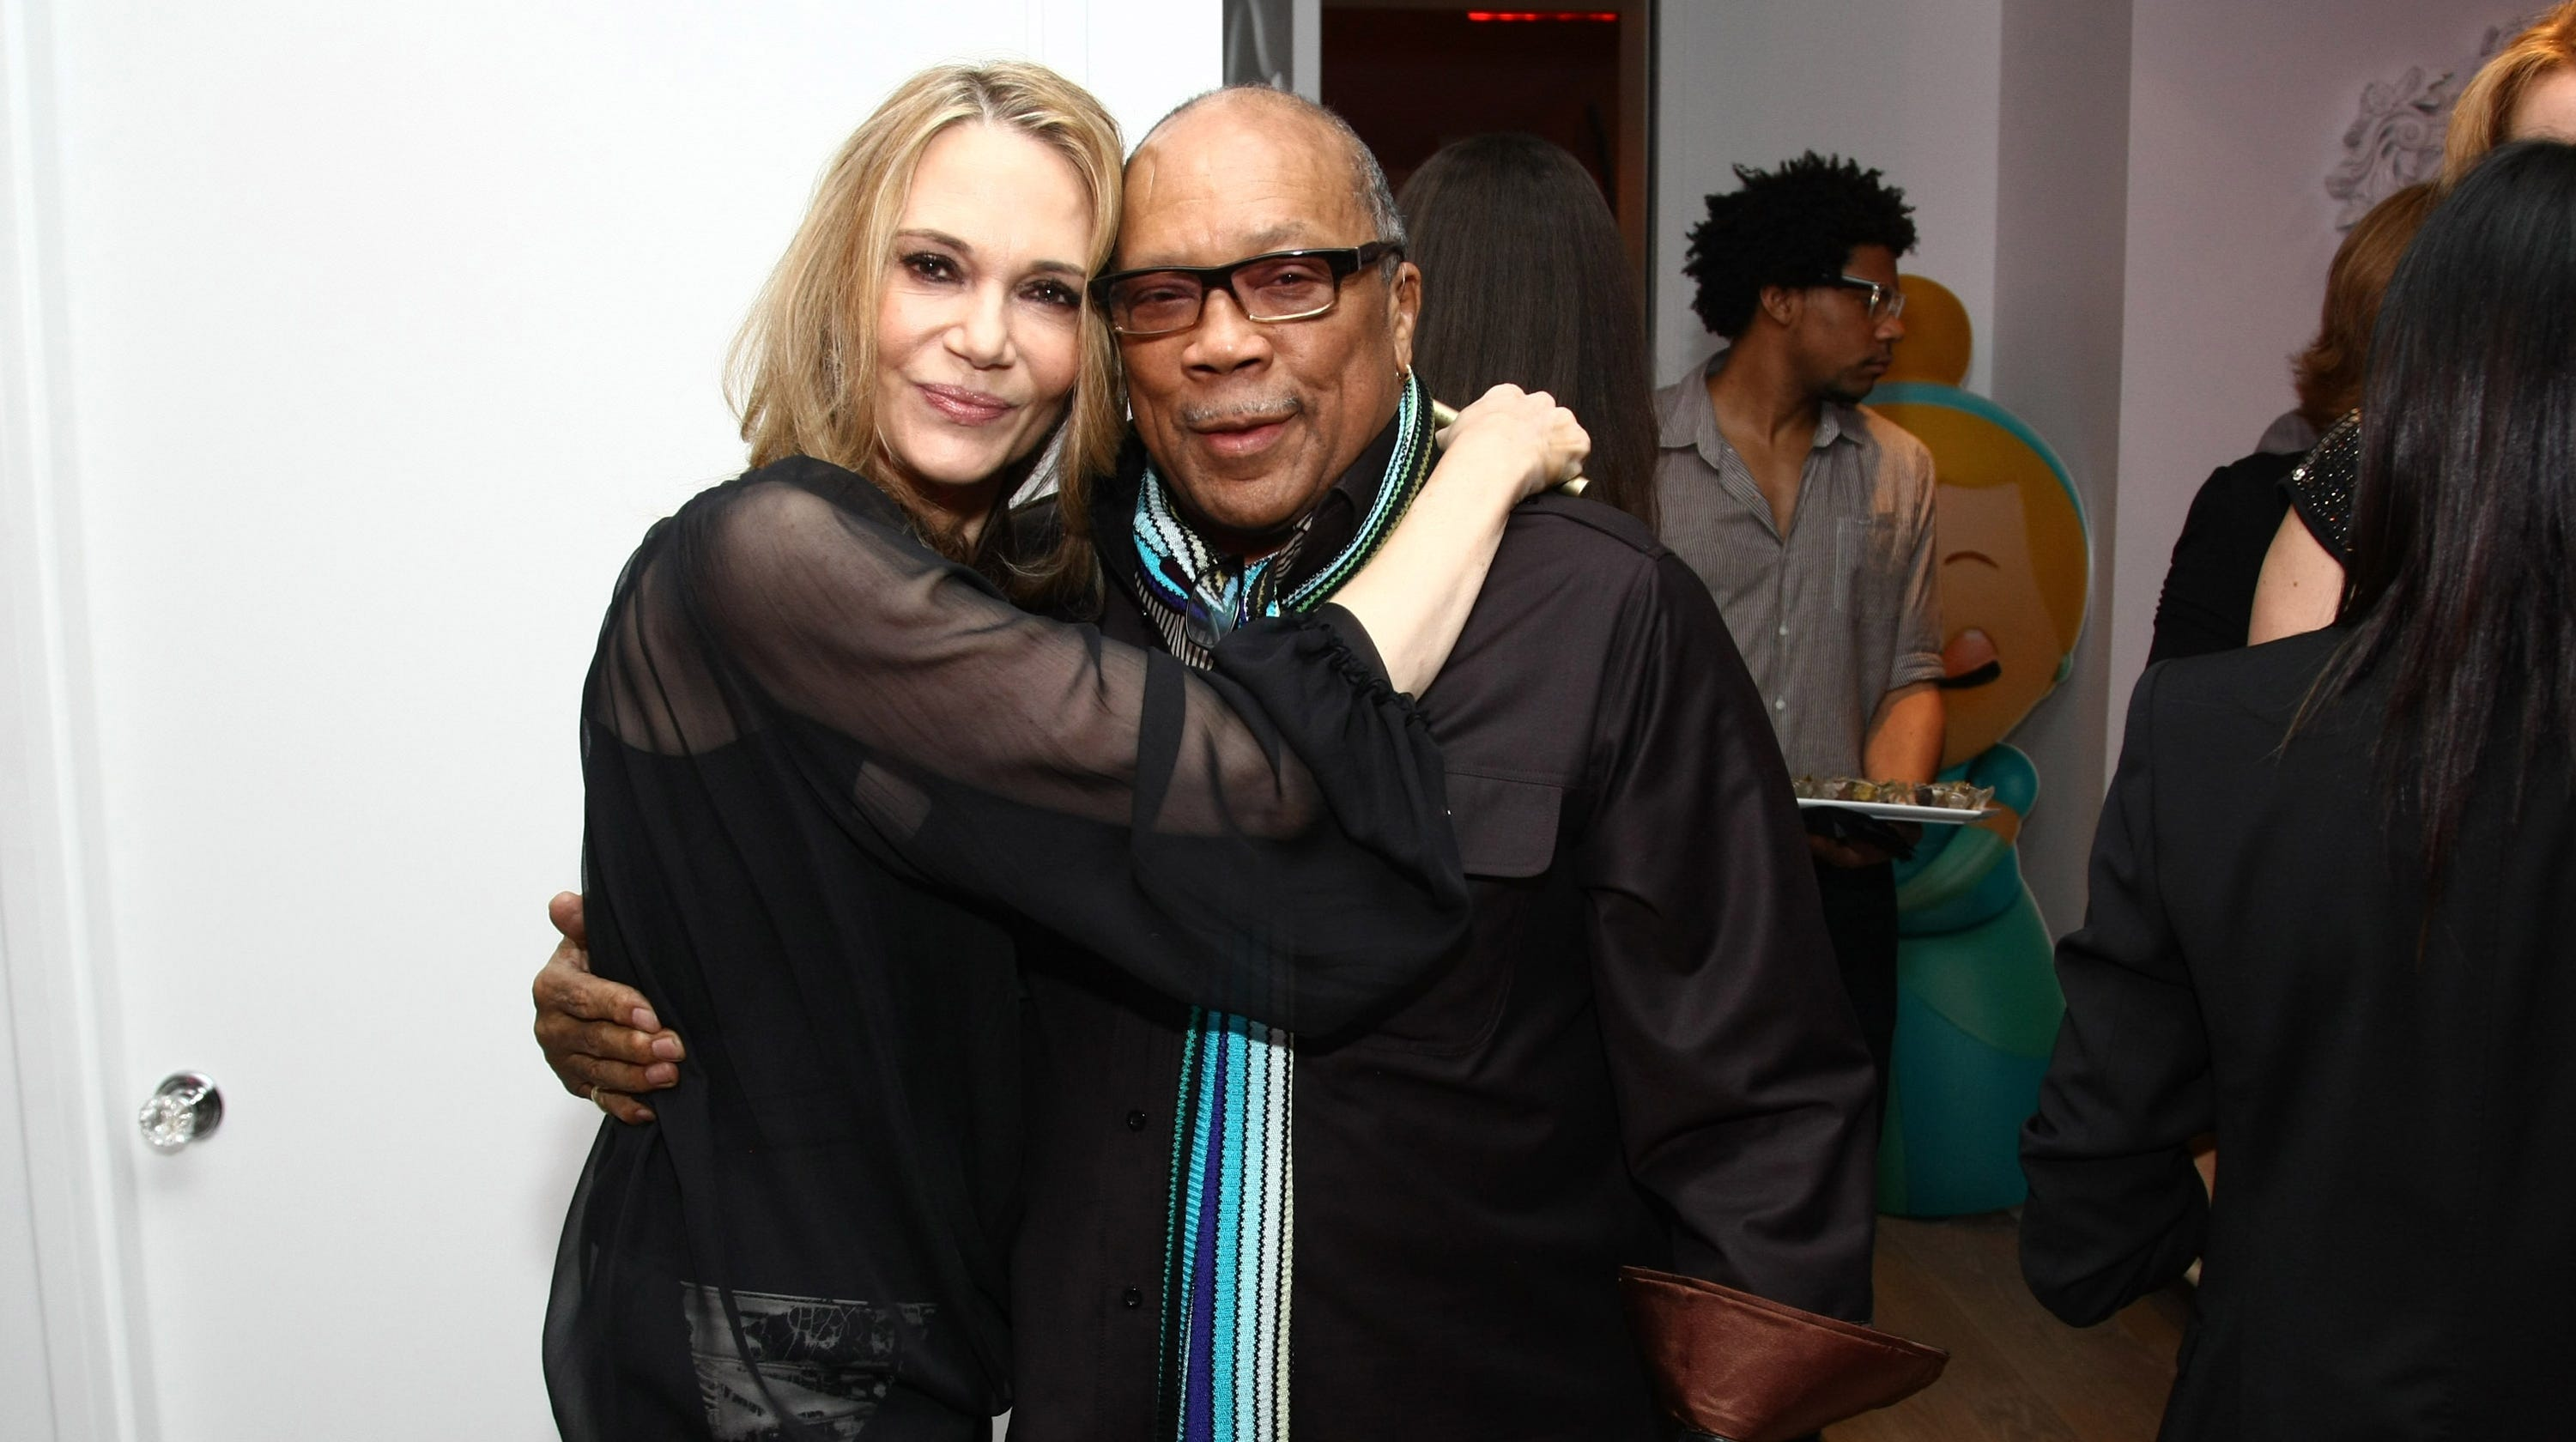 572fe78747ed Peggy Lipton dead; Quincy Jones pays tribute to 'beloved' late ex-wife